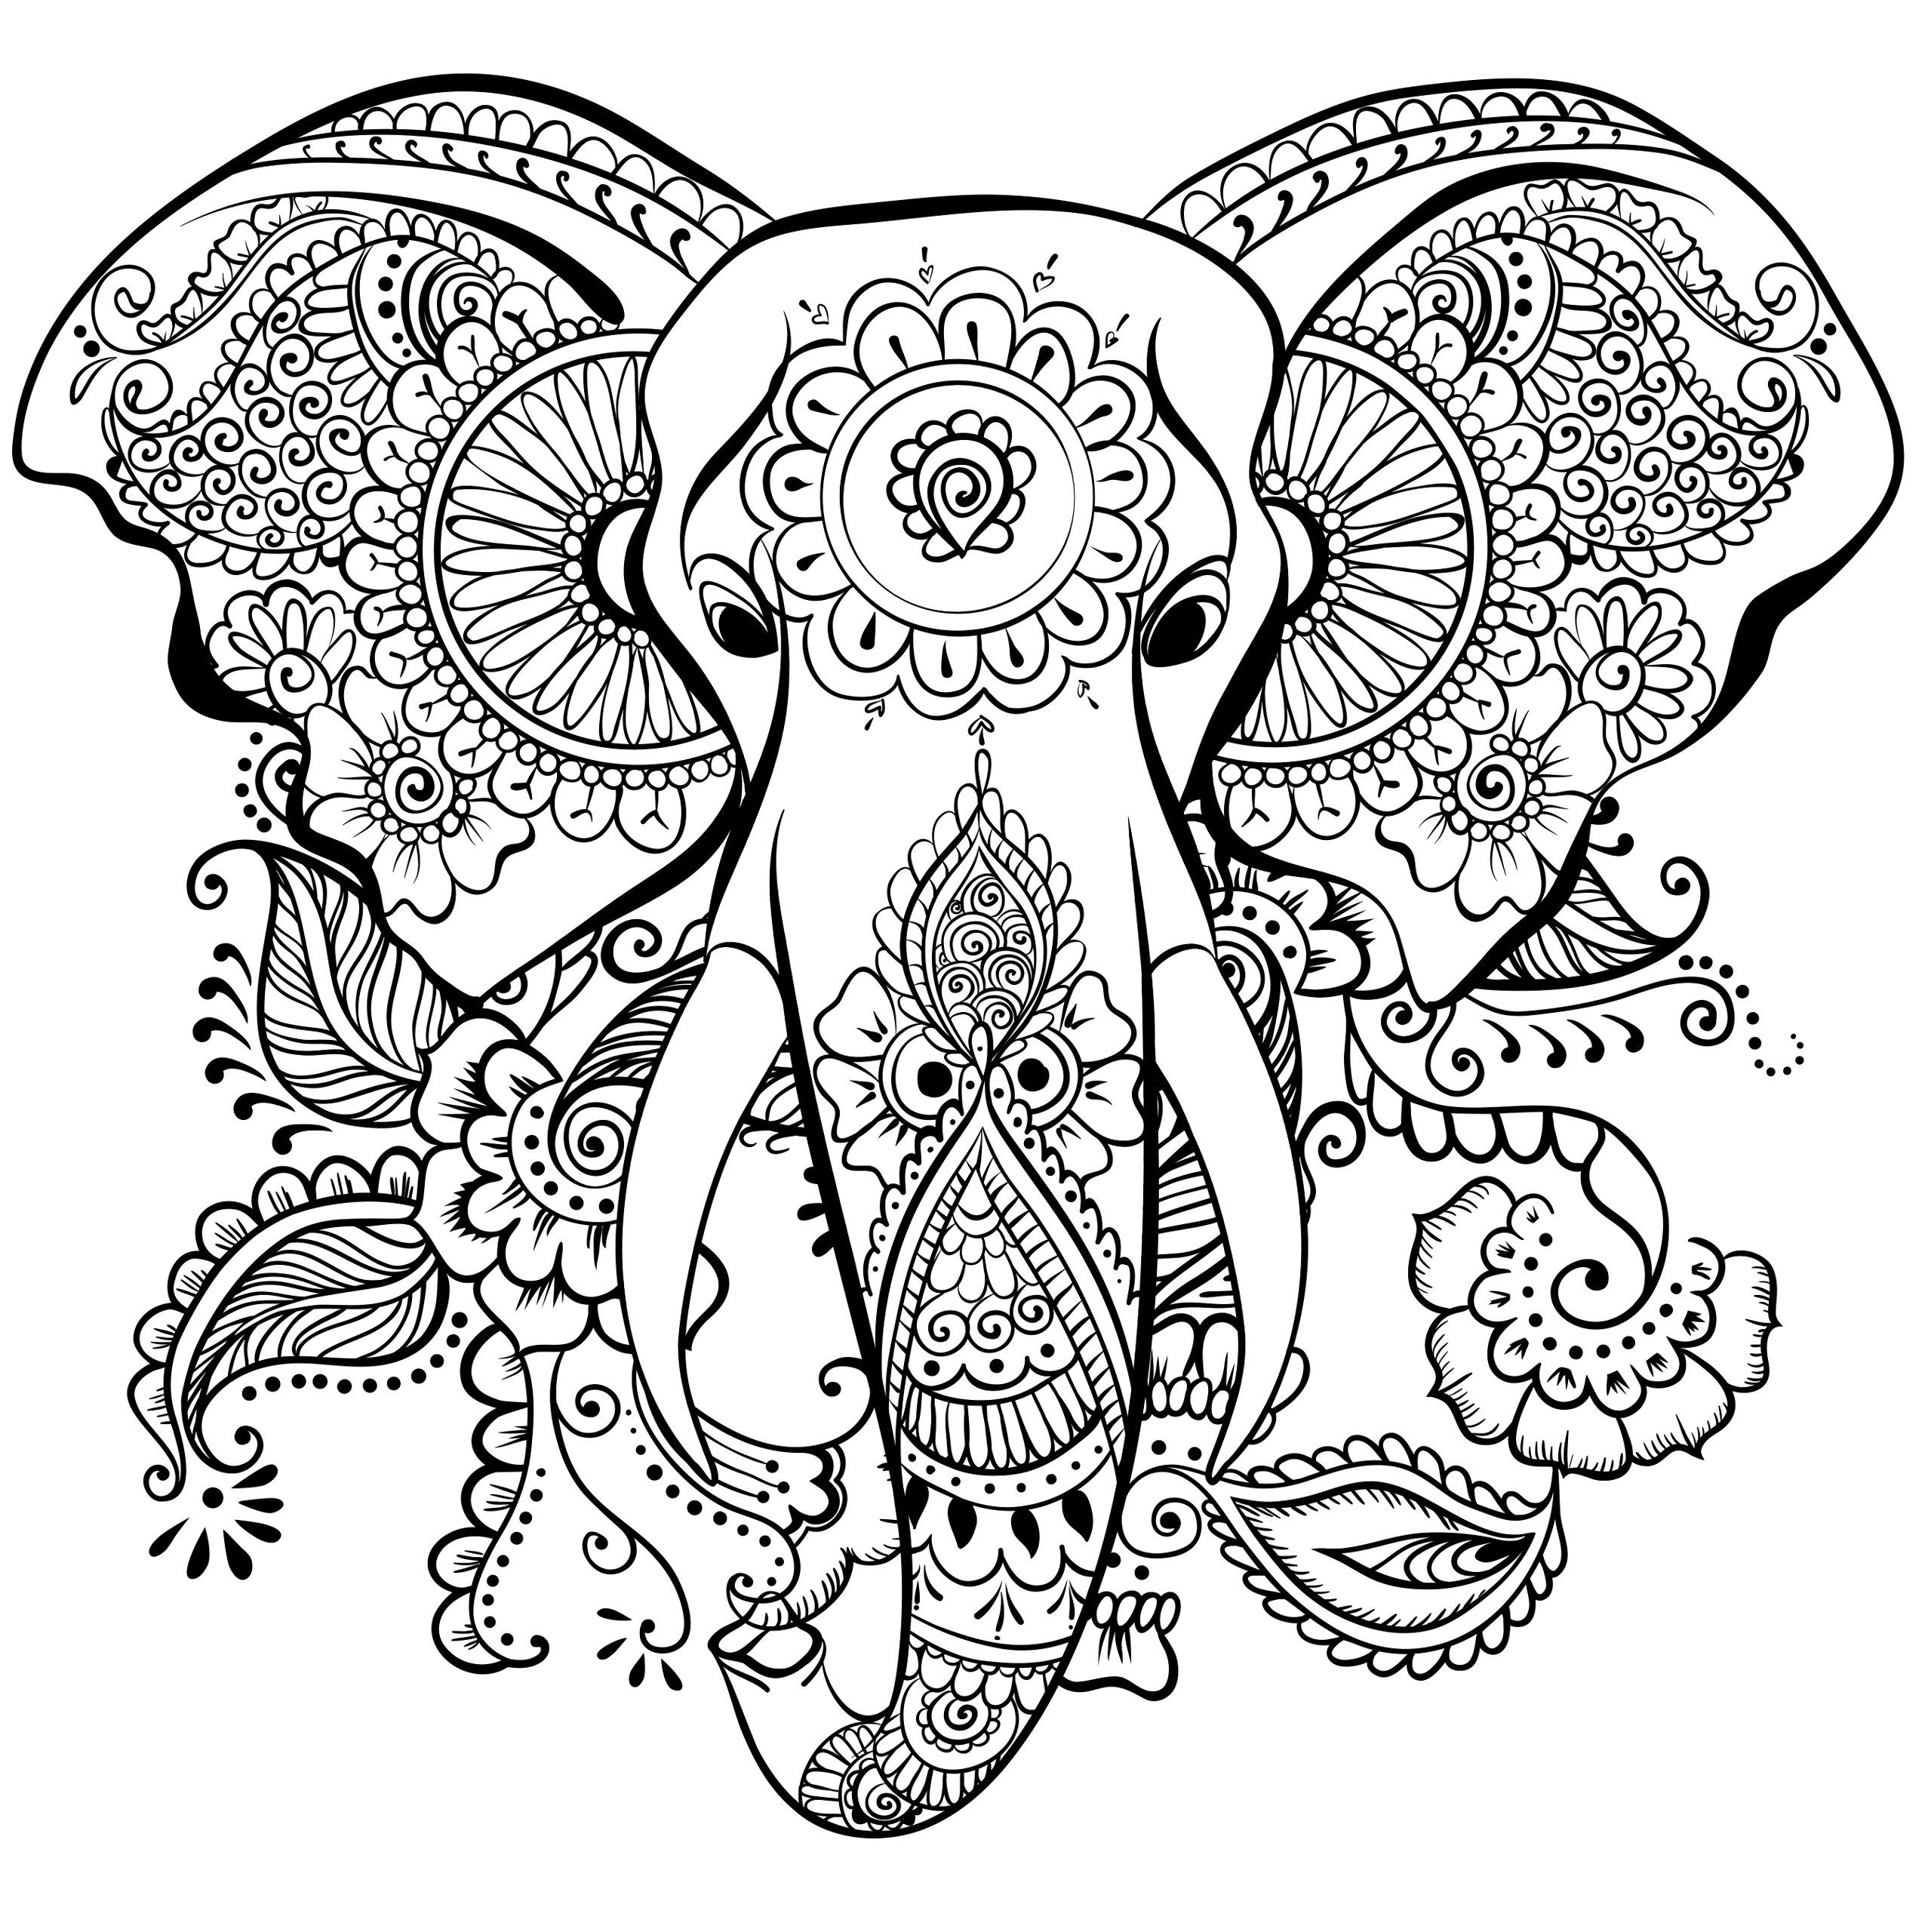 Stress relief coloring sheets free - Wild At Heart Adult Coloring Book 31 Stress Relieving Designs Artists